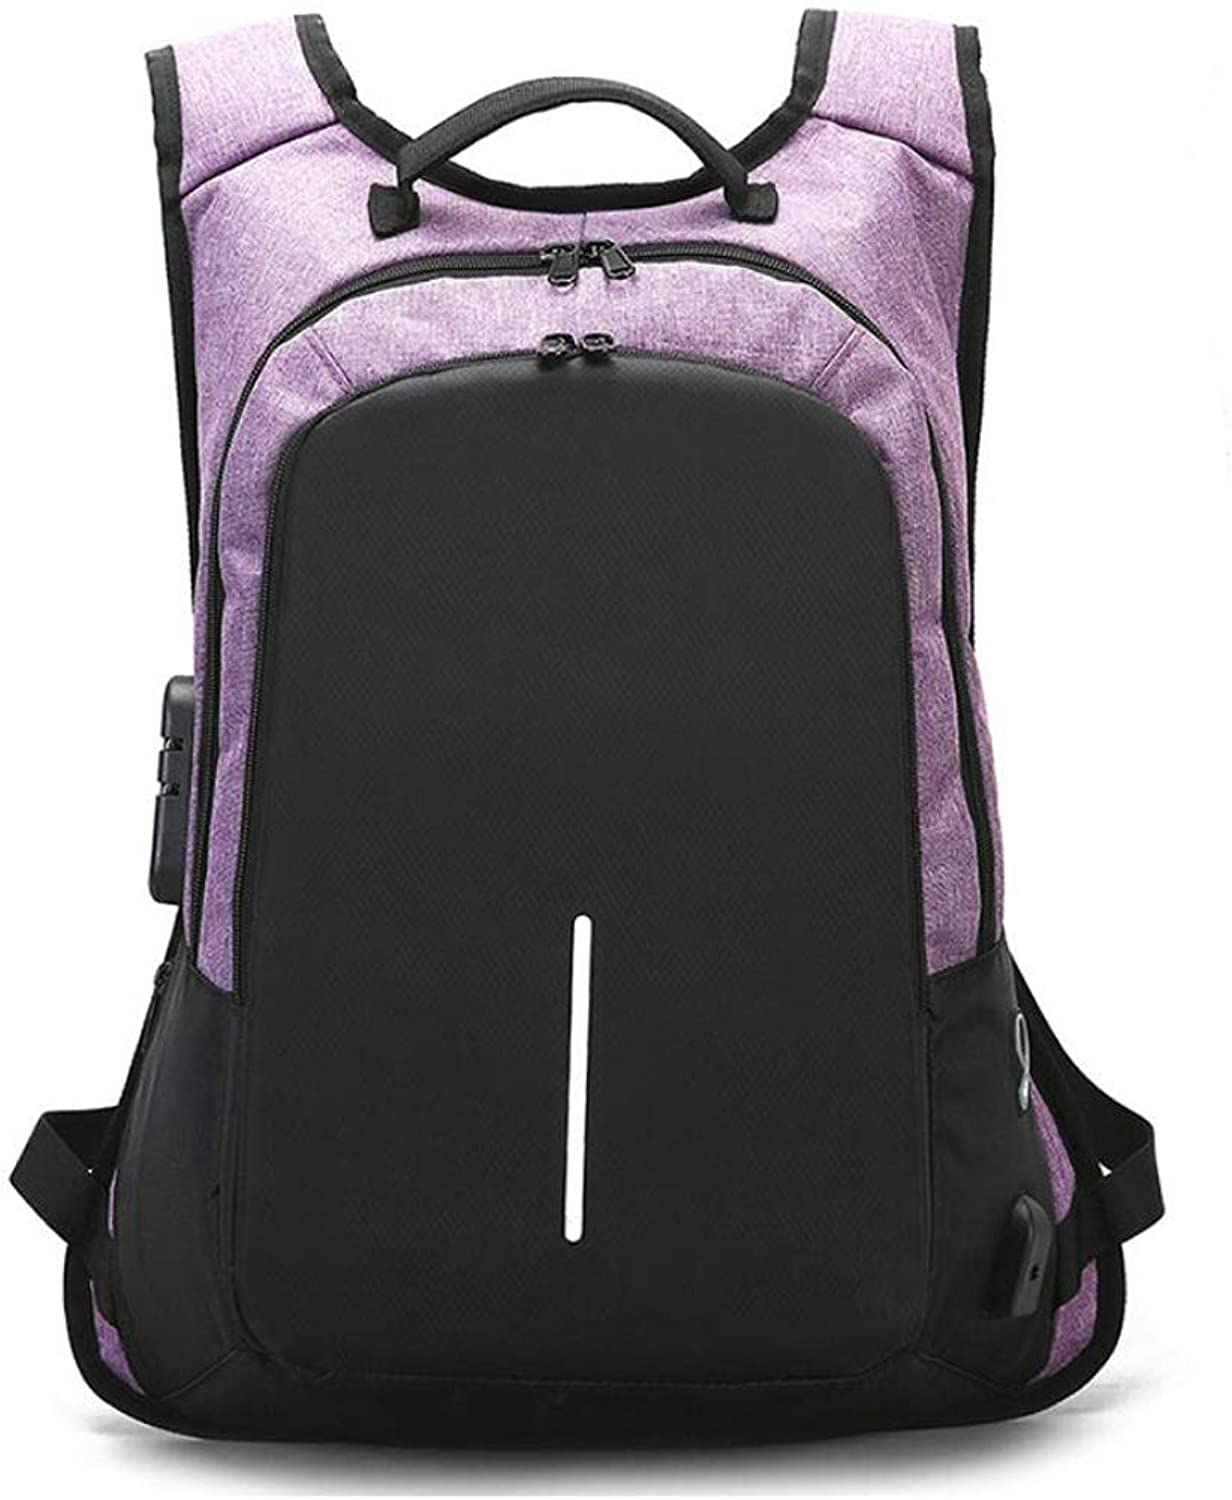 Business Backpack Men's School Bag Student Female Backpack Travel Men's Large Capacity Computer Backpack (Farbe   lila)